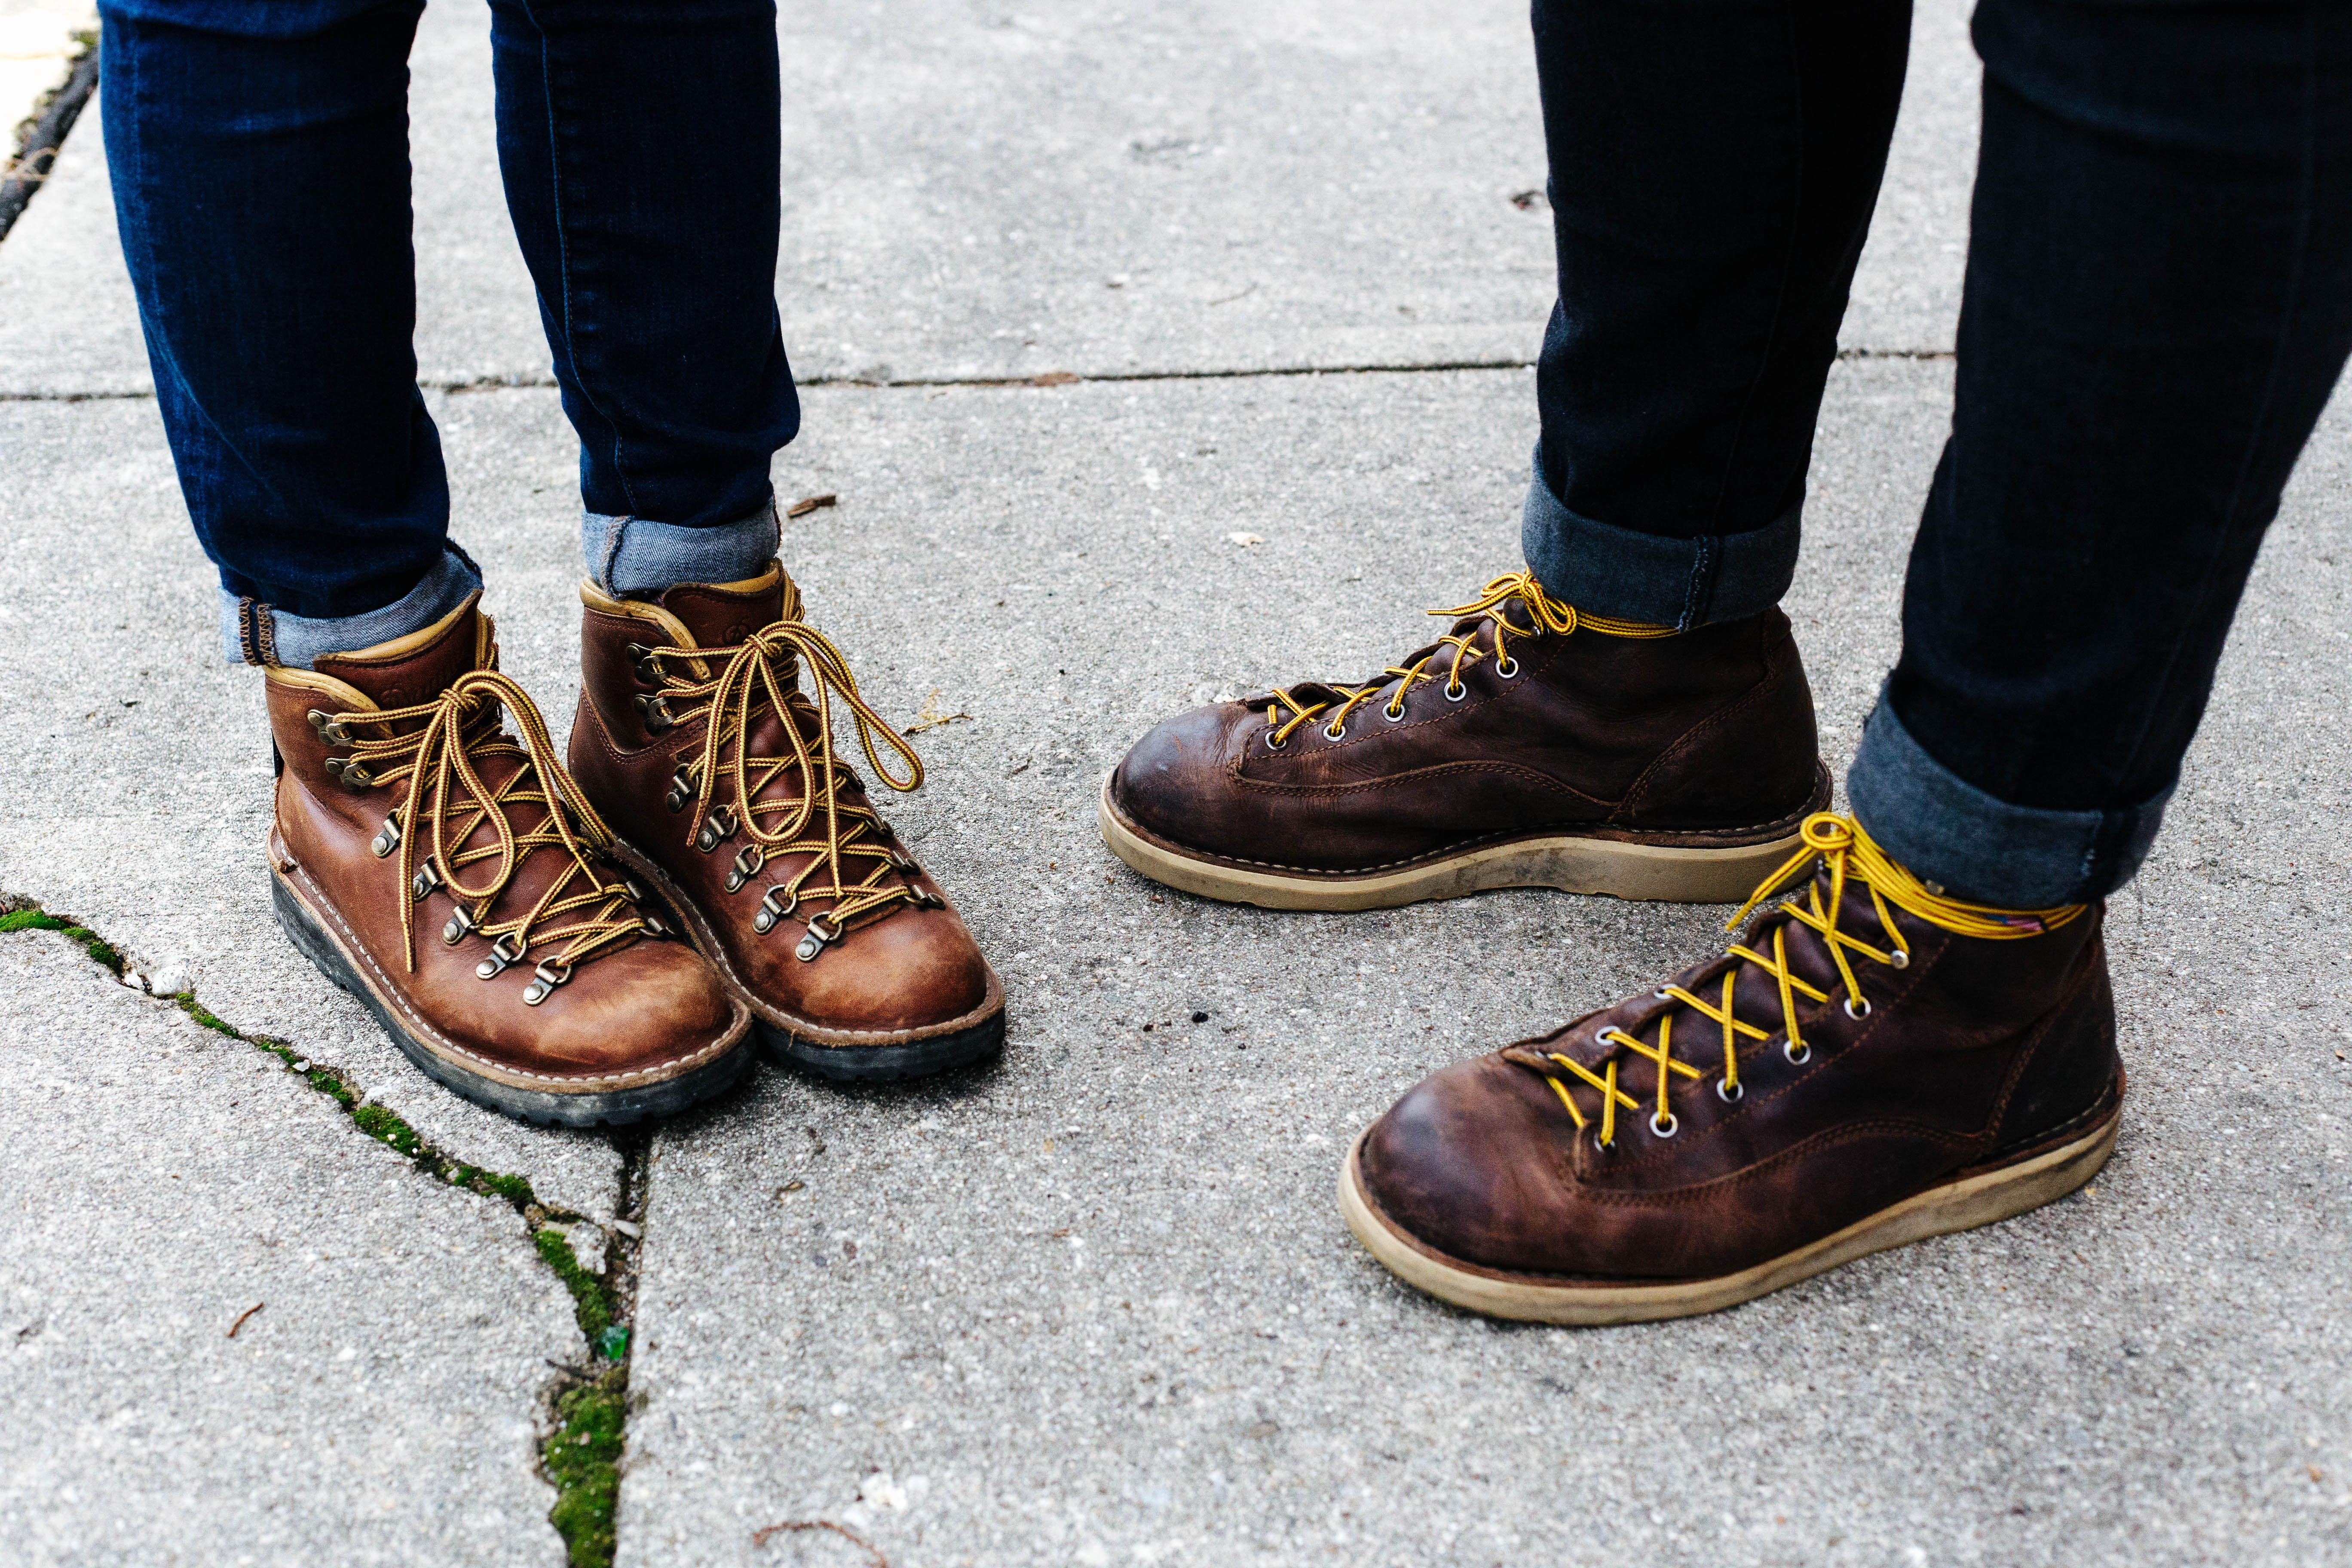 two person wearing brown leather boots